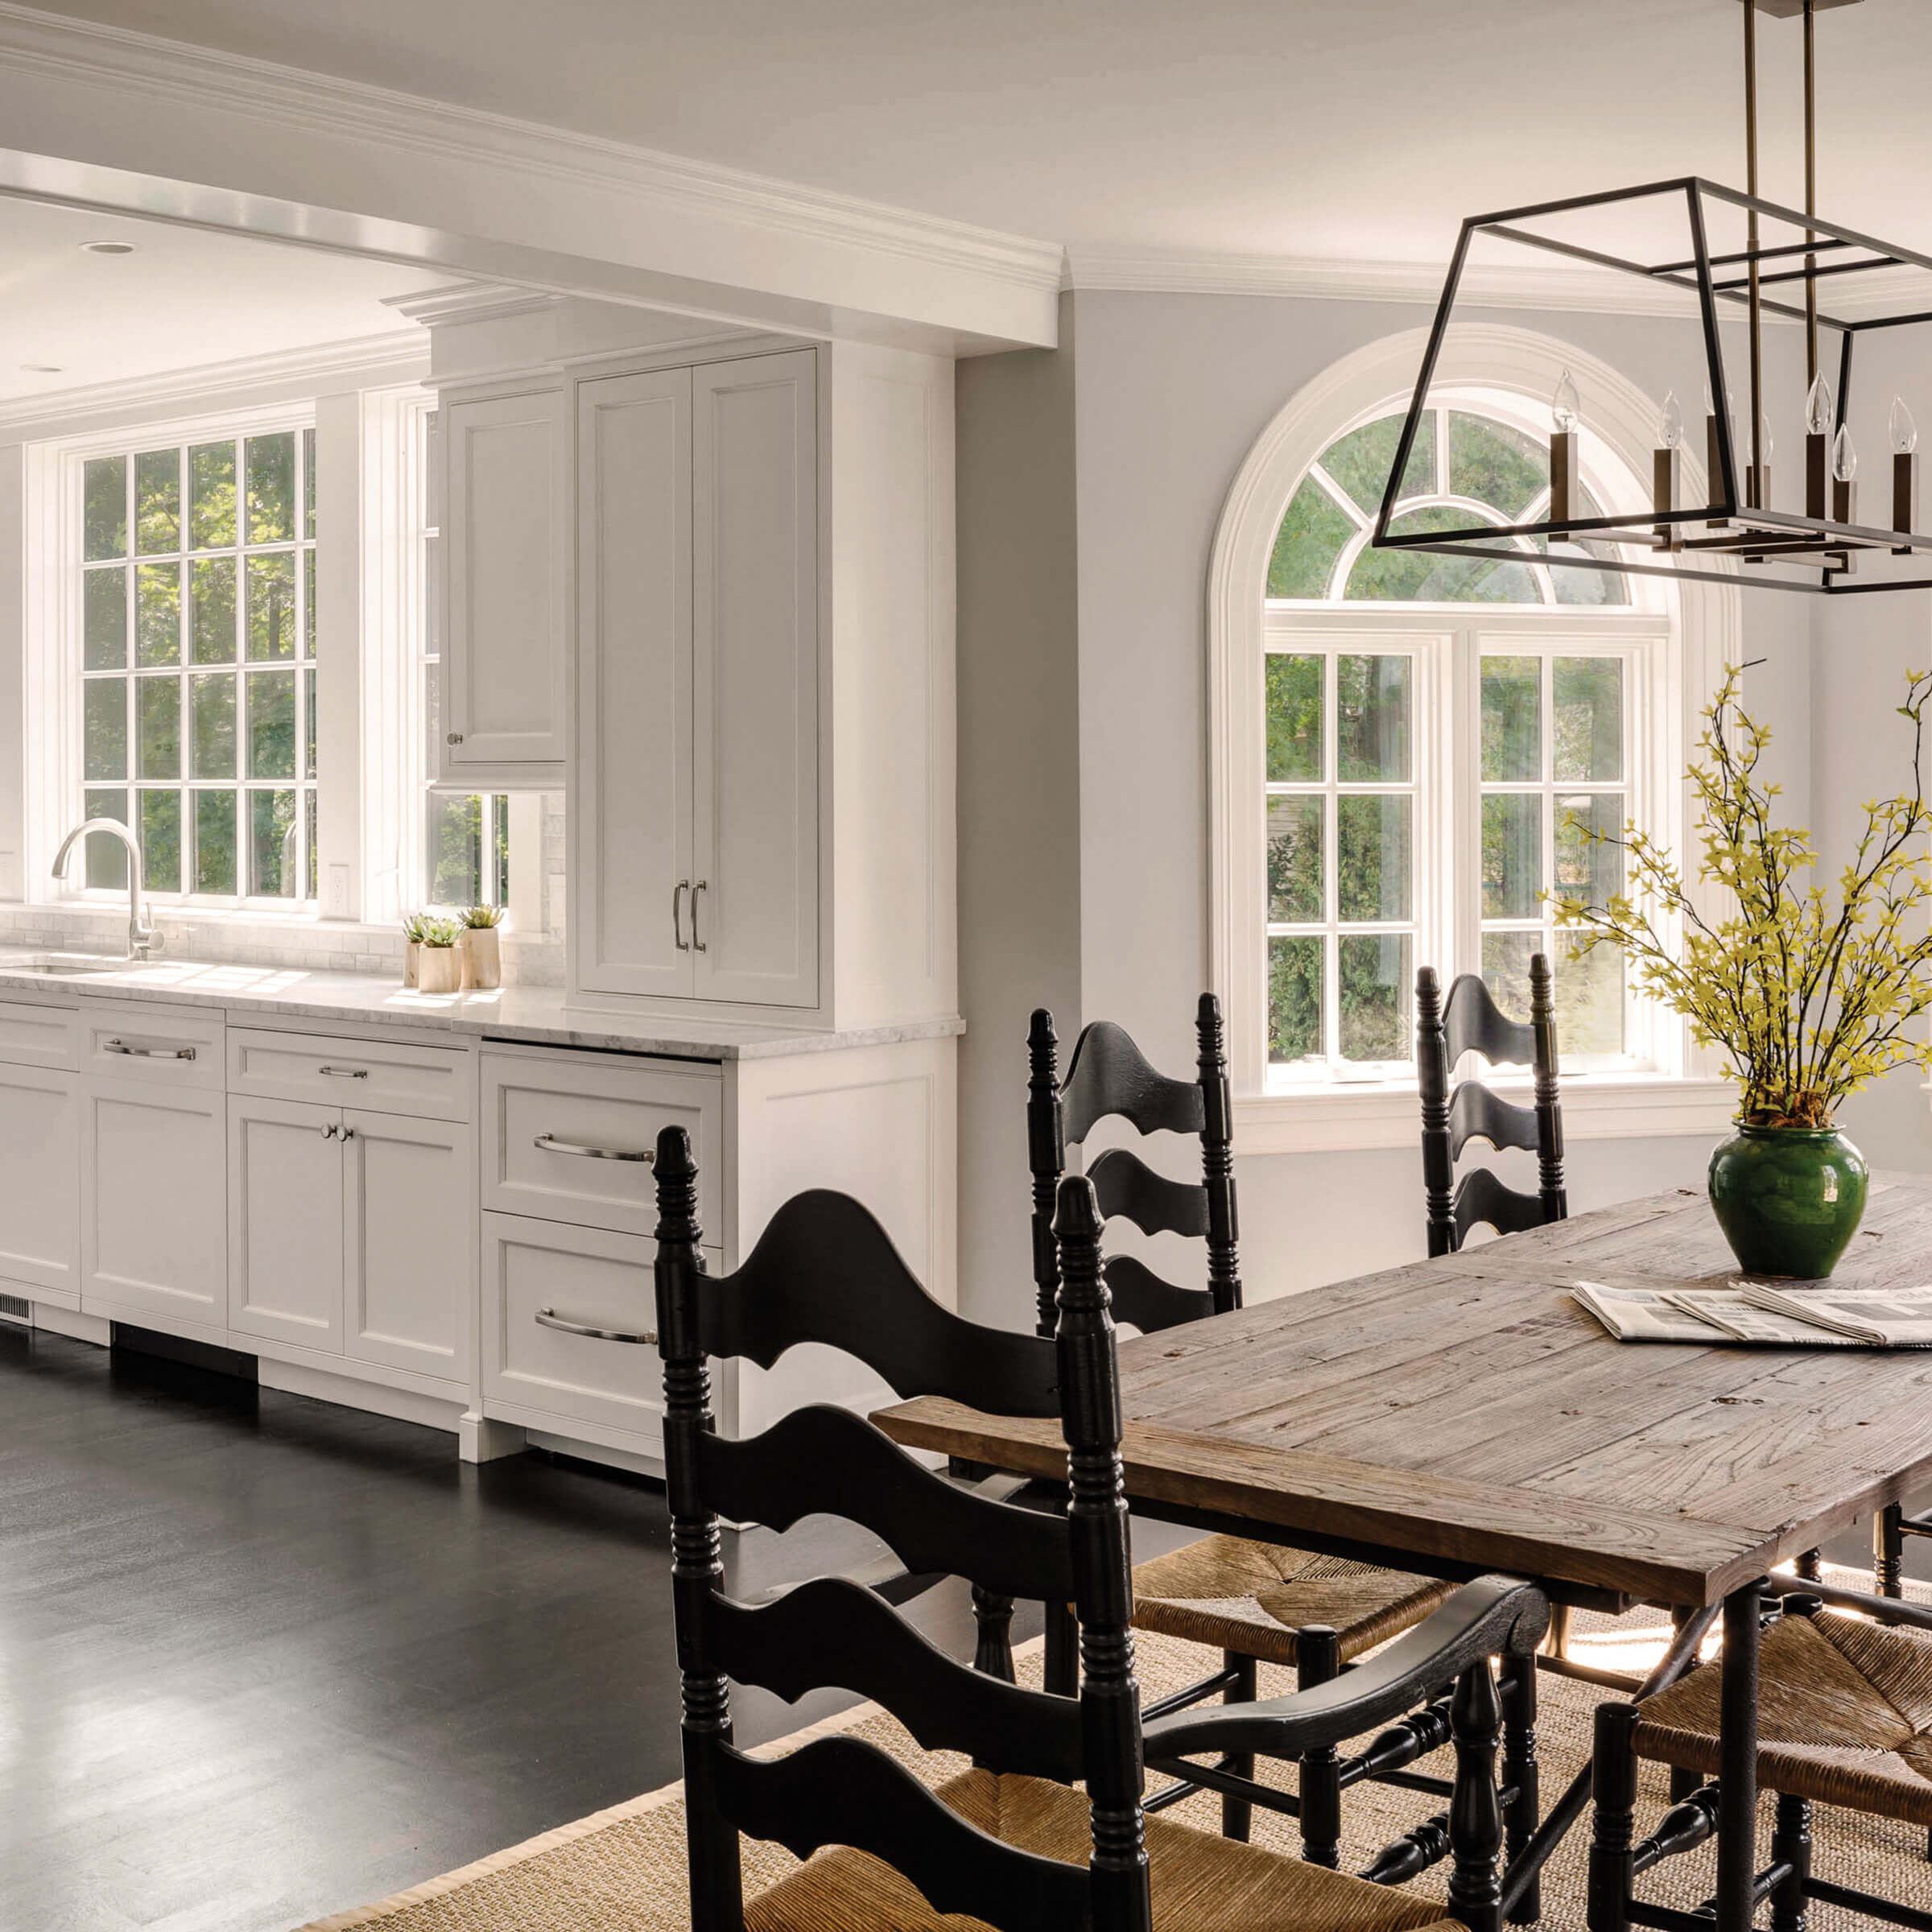 Spacious White Kitchen With Marvin Elevate Round Top Windows